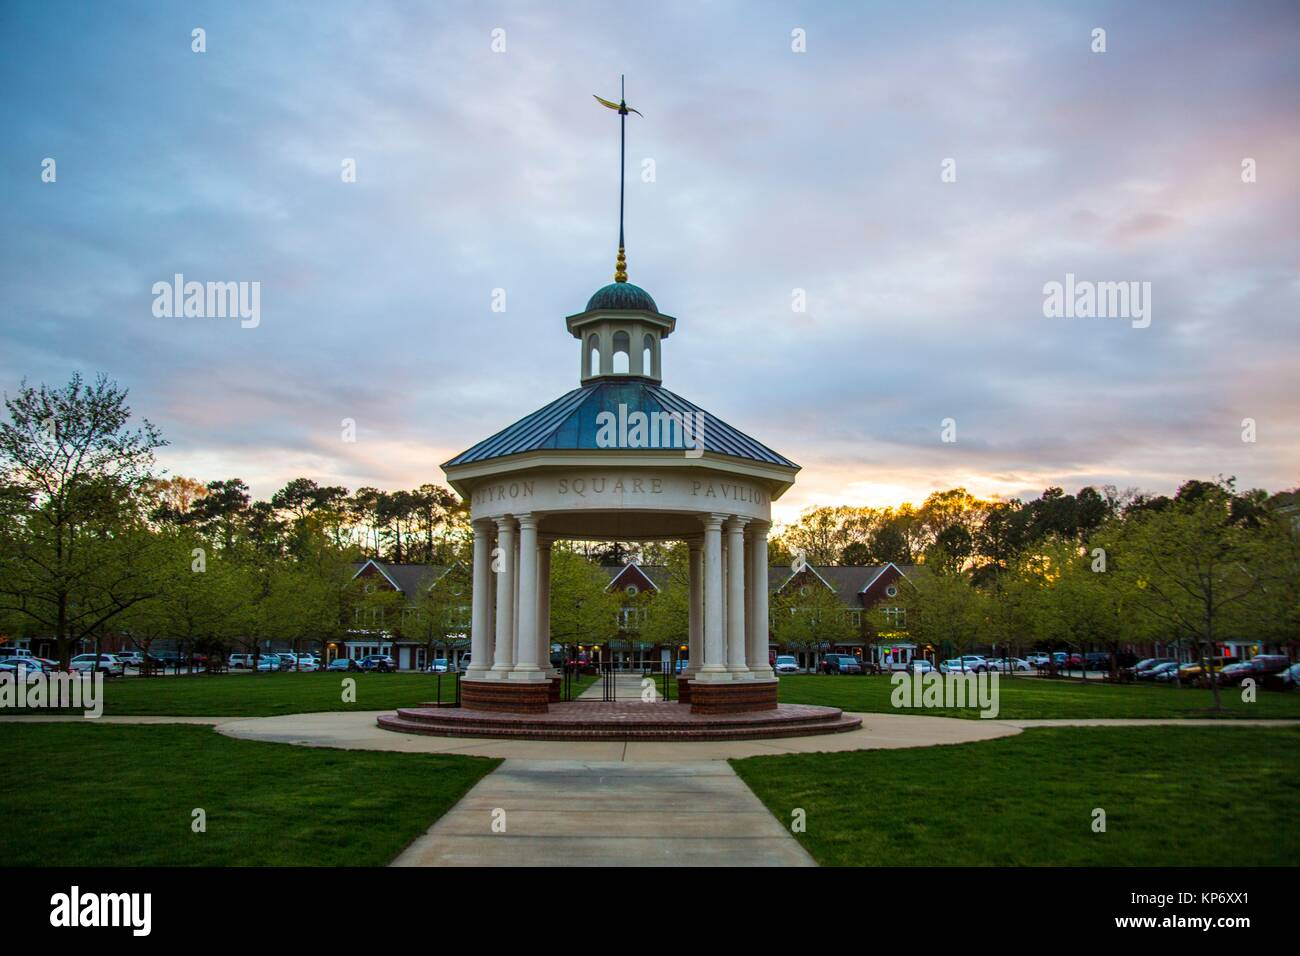 round beautiful Gazebo in a town square, in a town grass area where the sunset is setting. - Stock Image